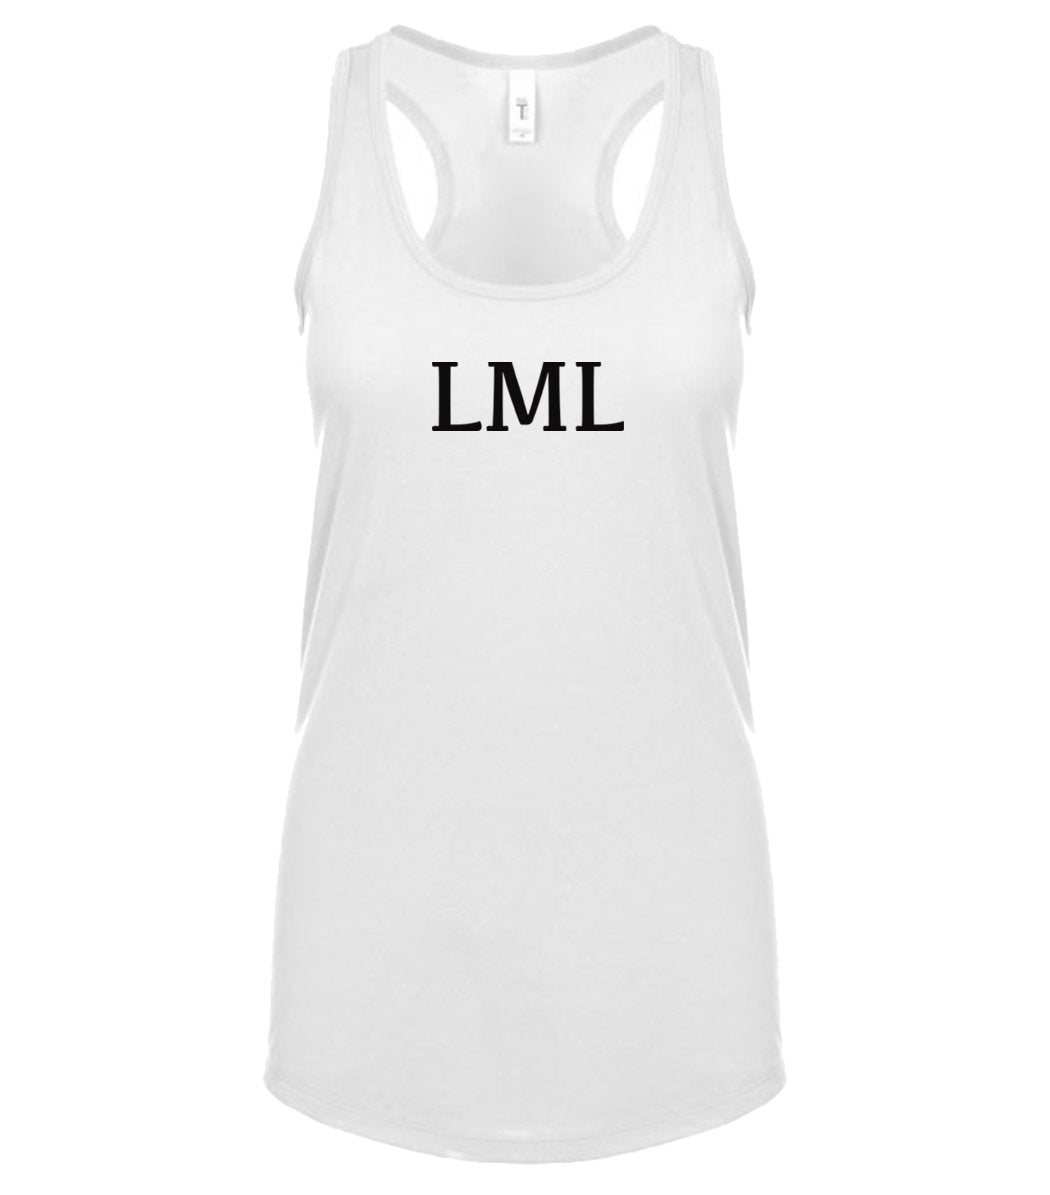 white LML racerback tank top for women